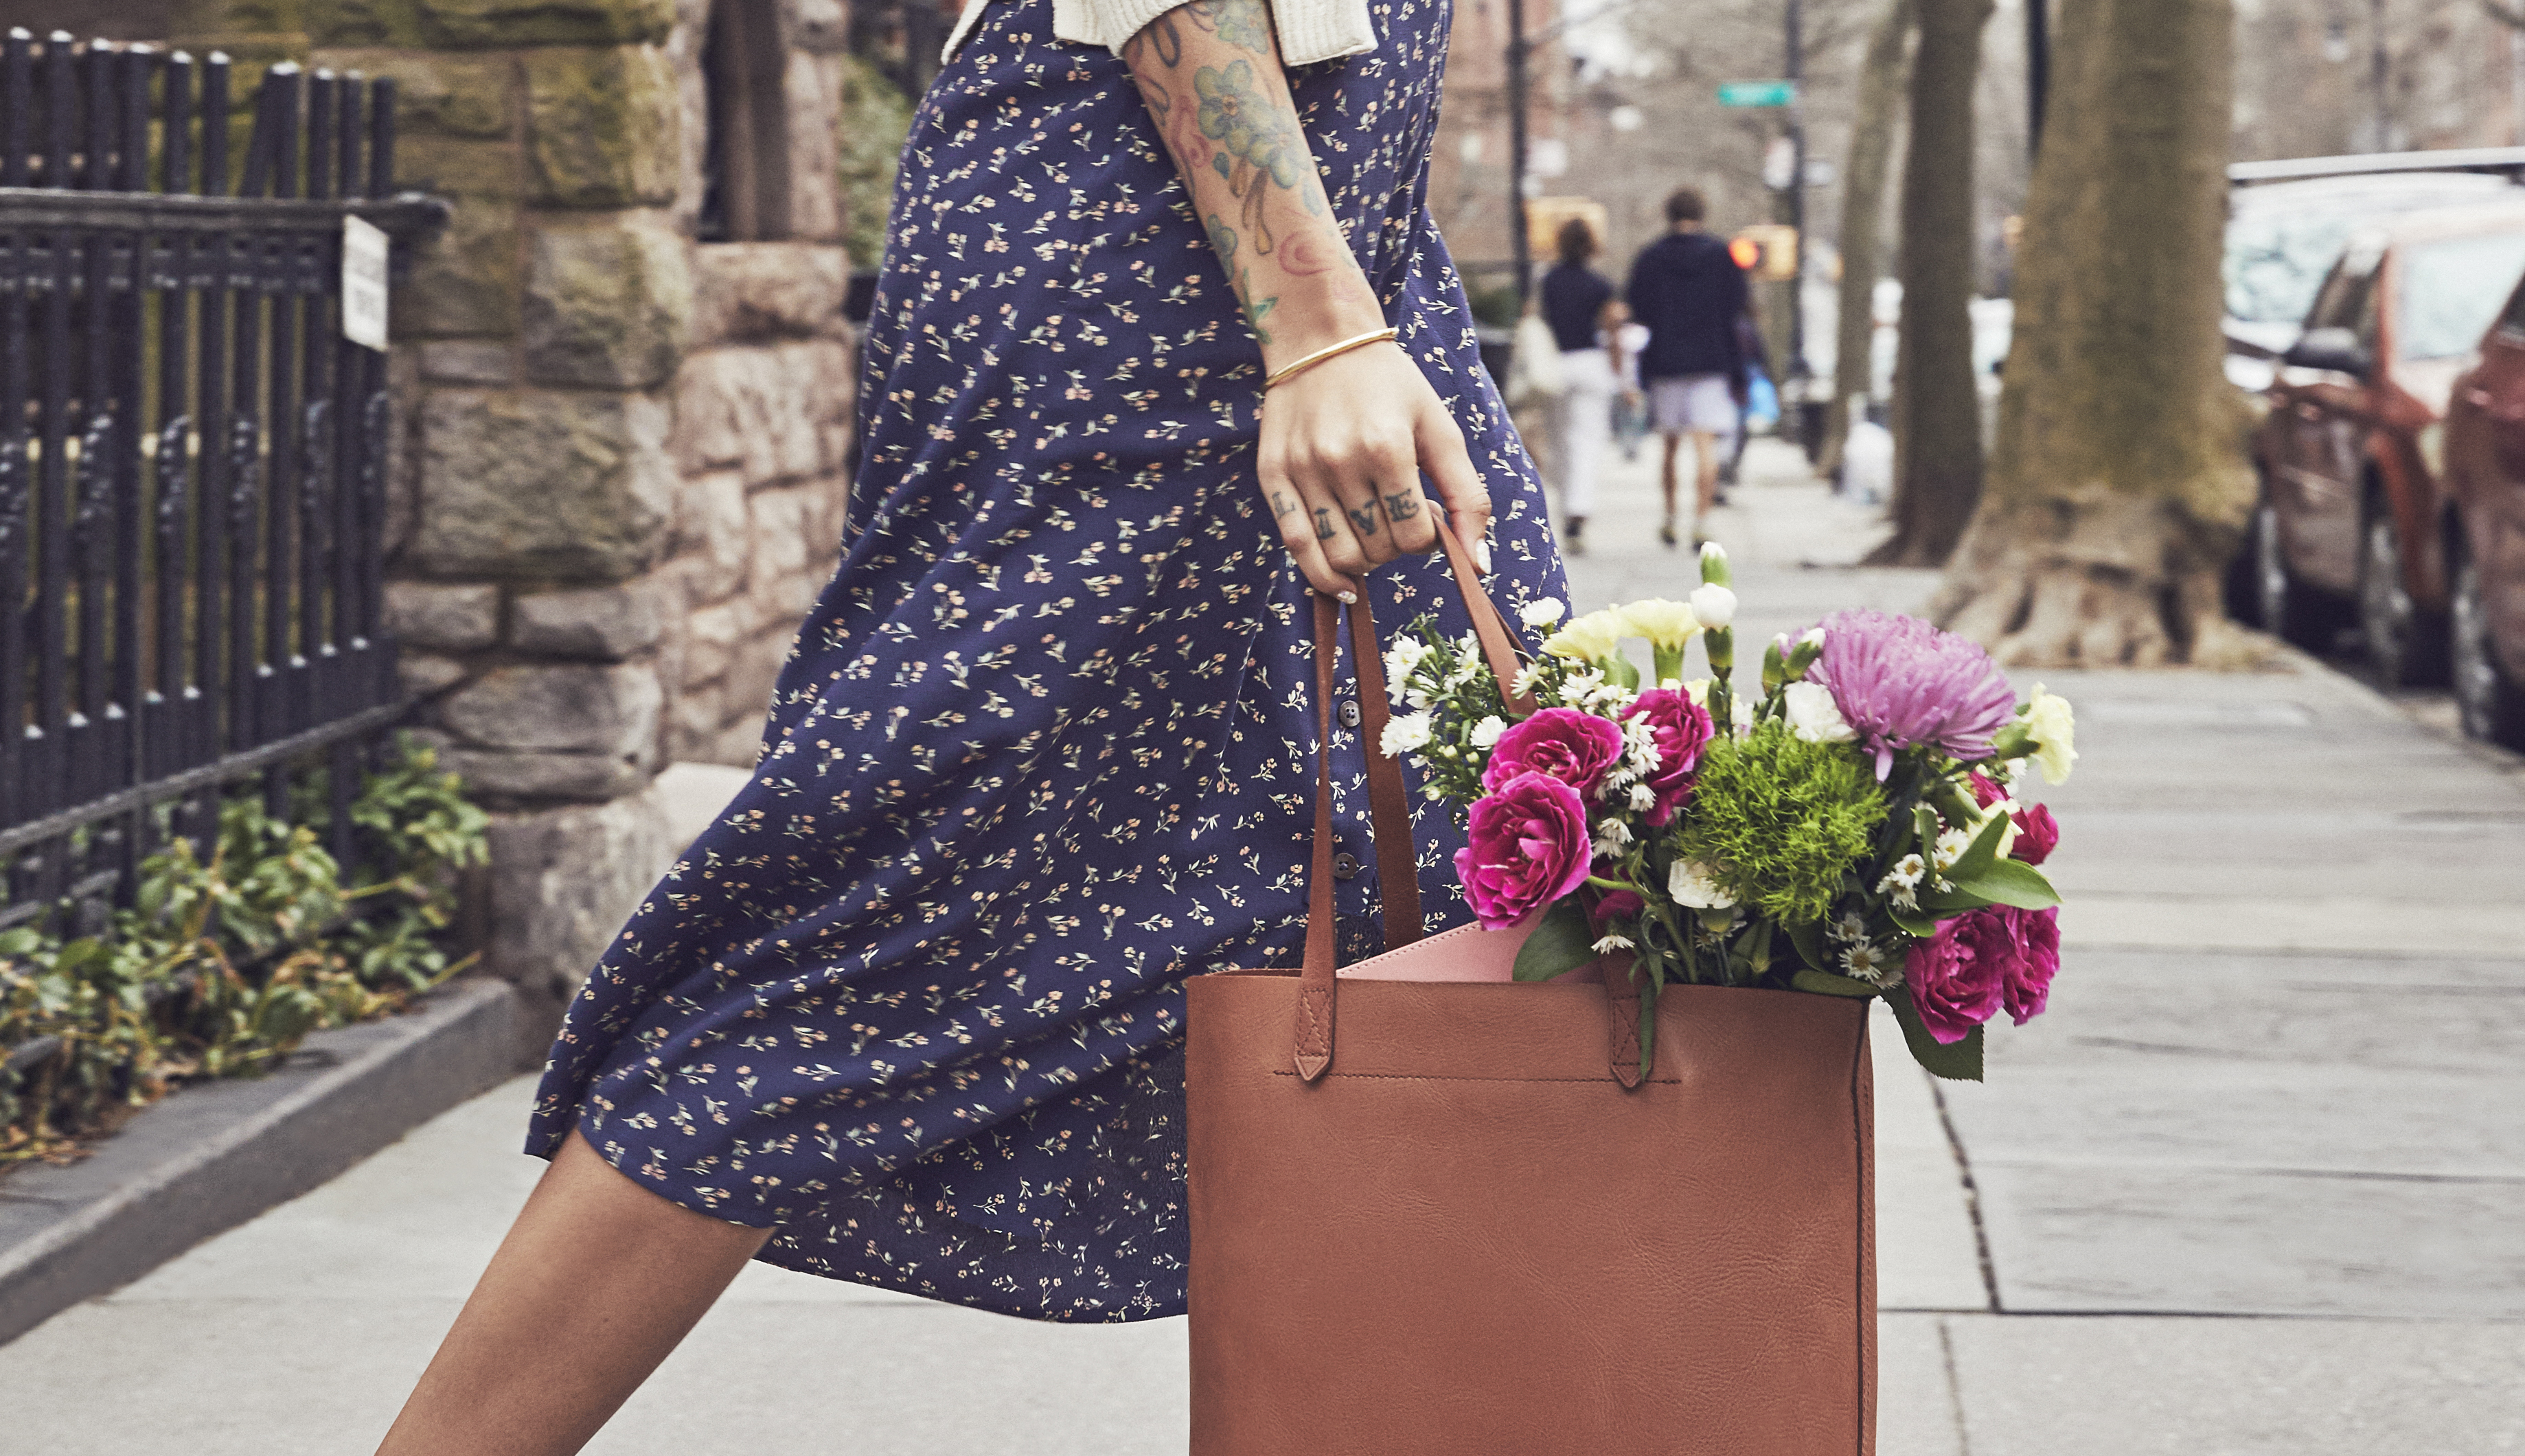 Woman carrying floral bouquet with white asters